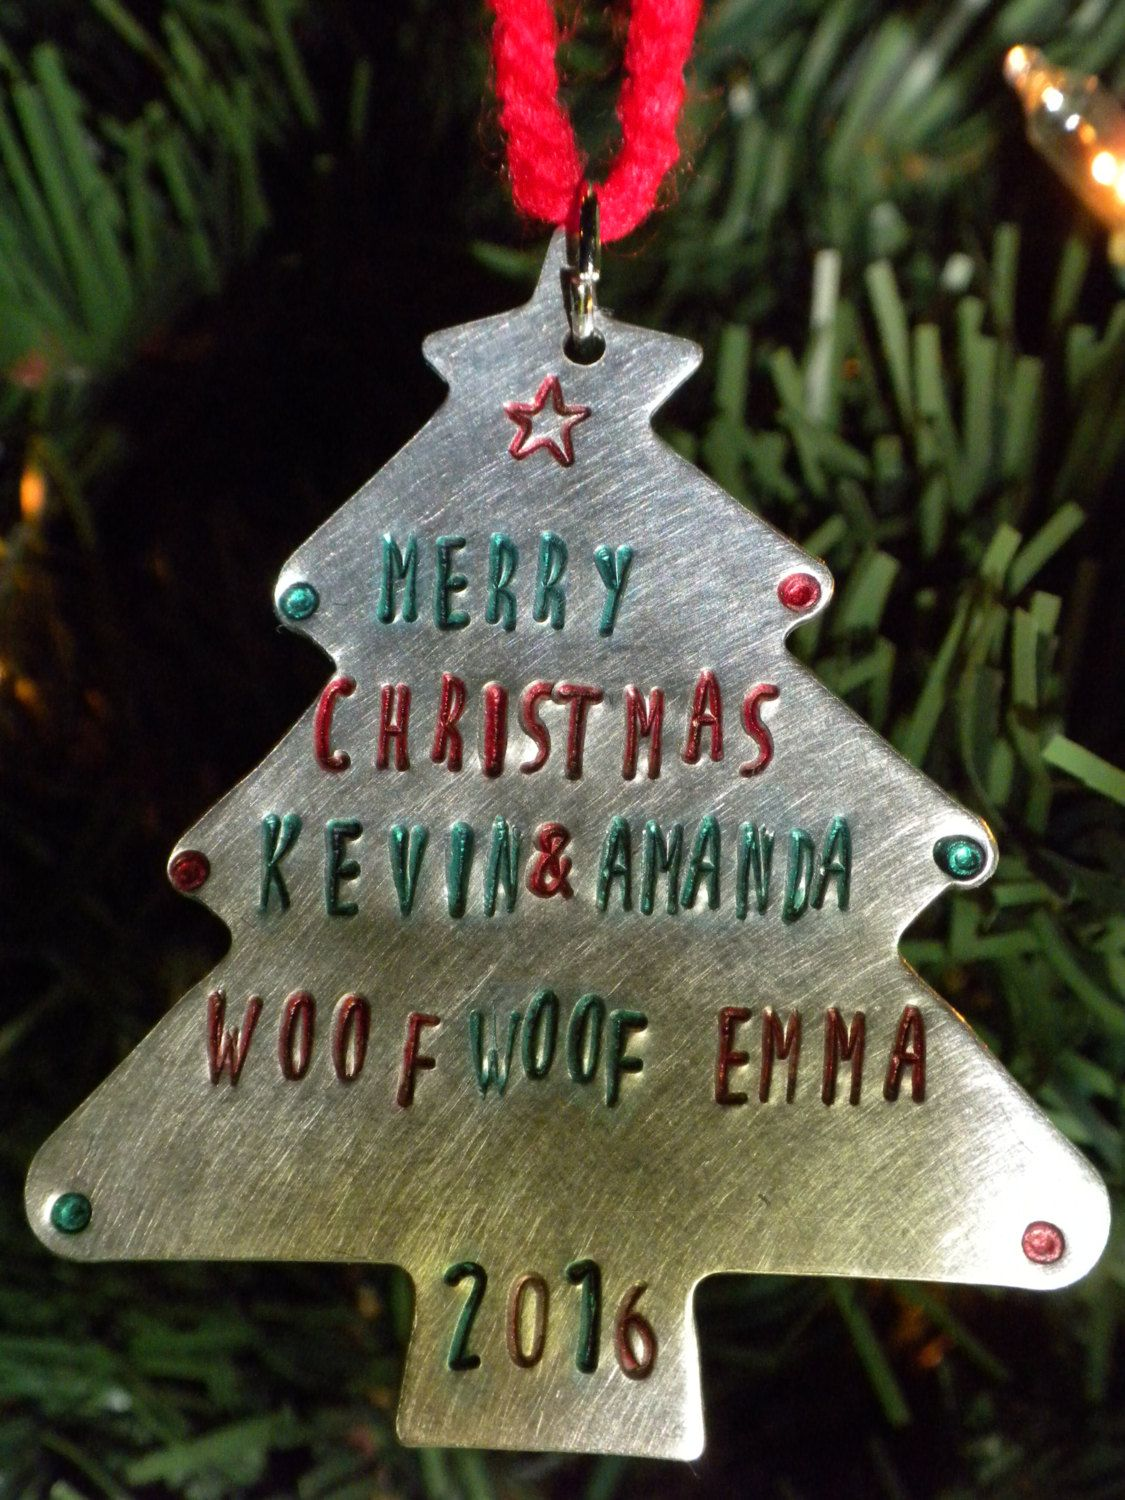 Christmas Tree Ornament Custom Ornament Metal Stamped Ornament Etsy Custom Ornament Christmas Tree Ornaments Personalized Ornaments